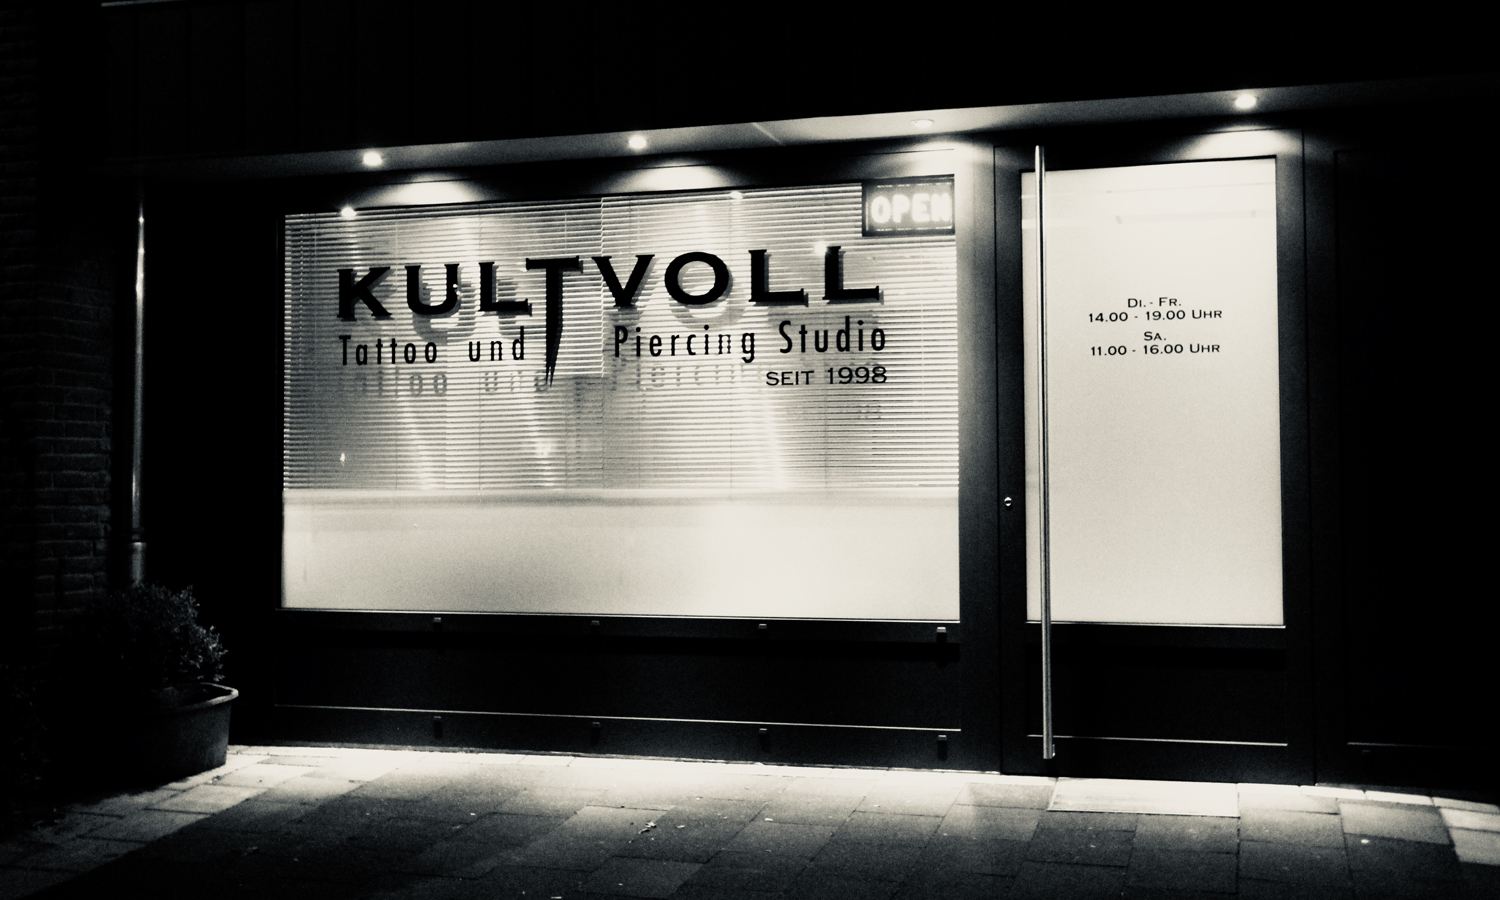 Kutvoll + Tattoo und Piercing Studio in Gütersloh